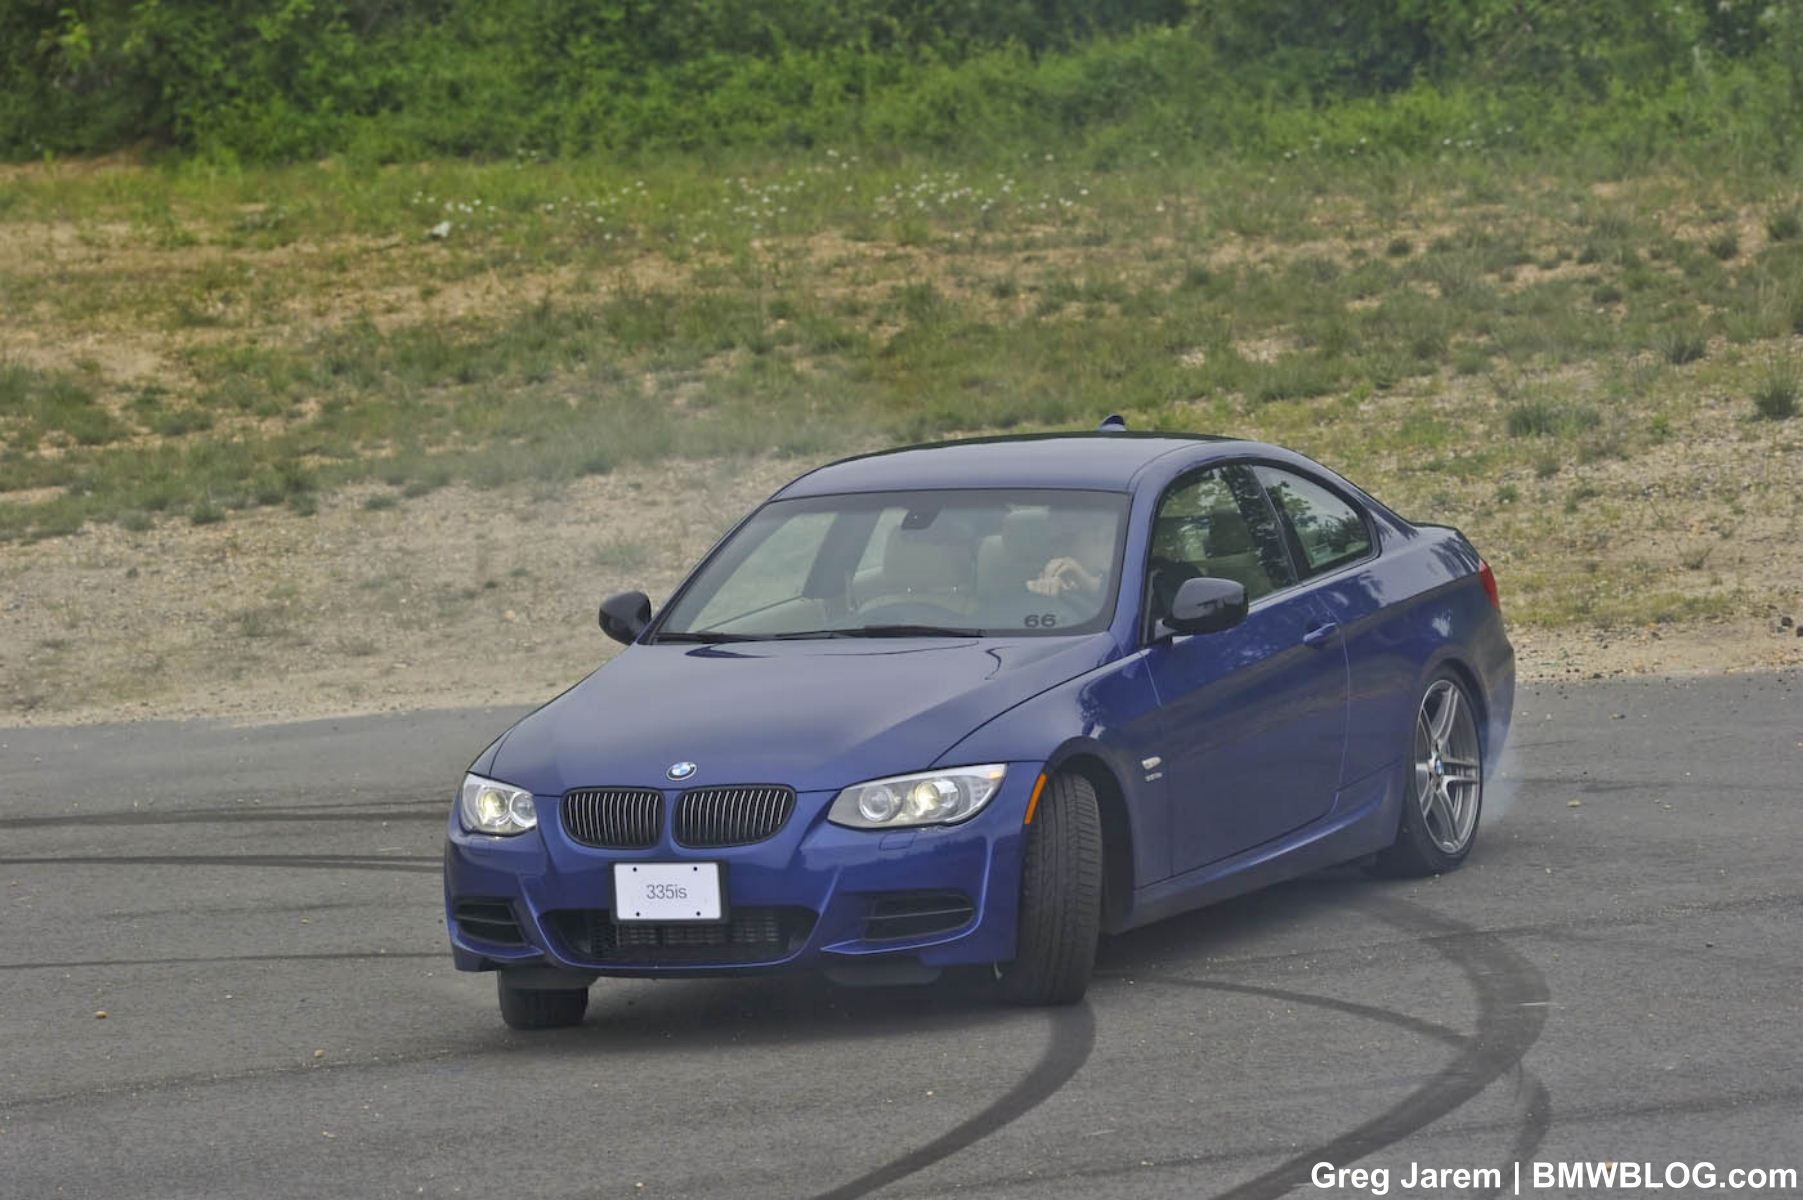 bmw 335is race track review 40